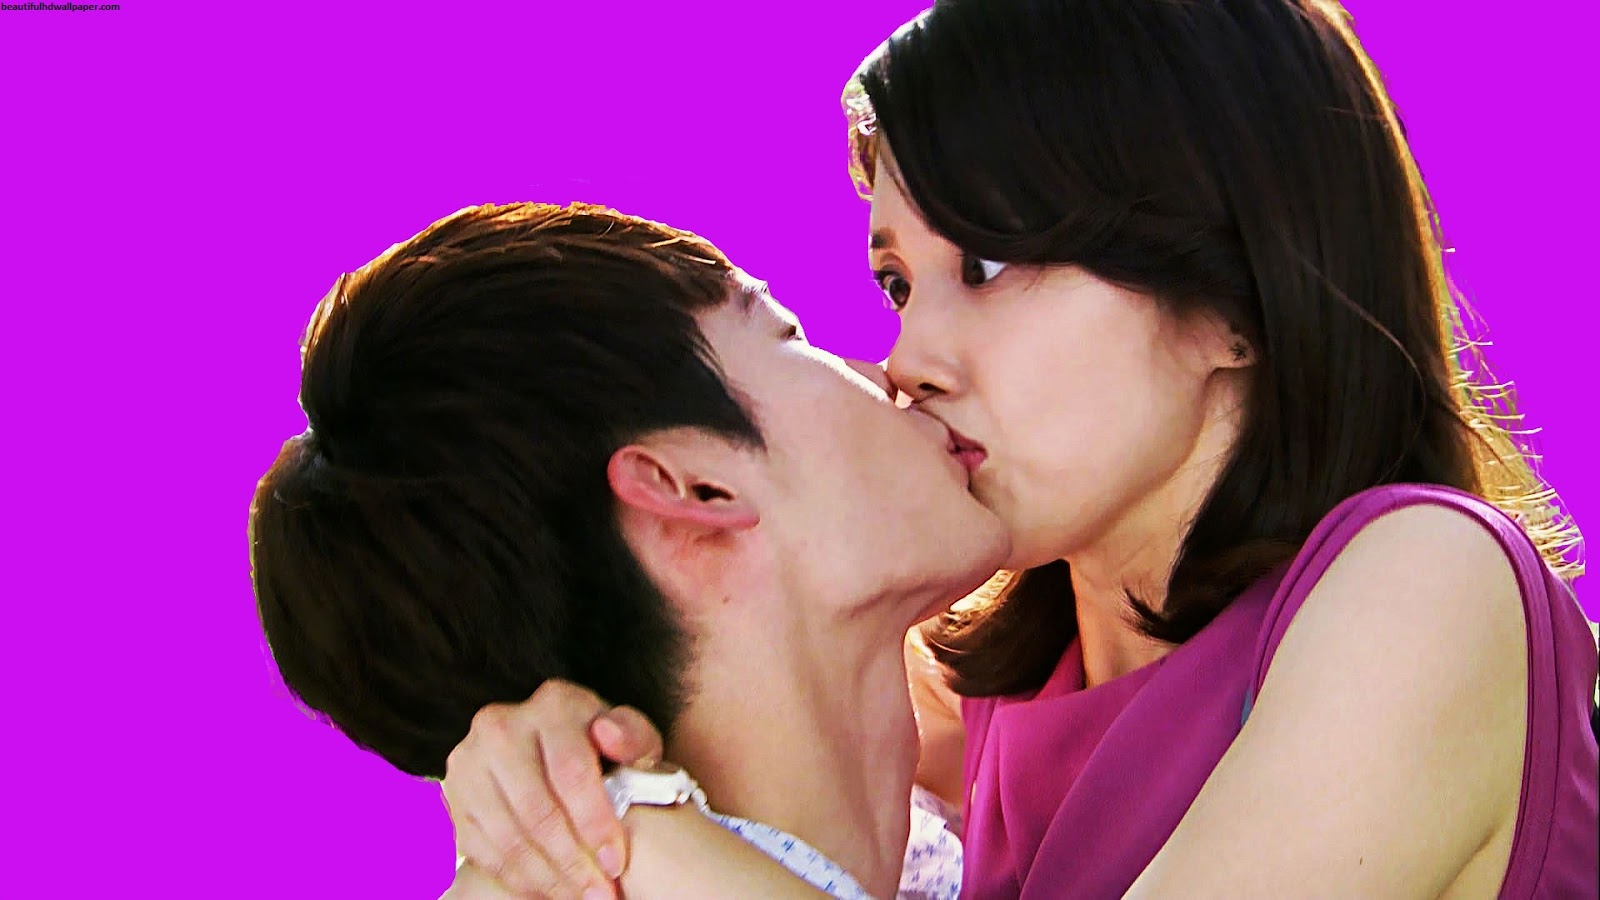 Hot Couple Kissing 1080P Hd Wallpapers  Images  Hd -1361